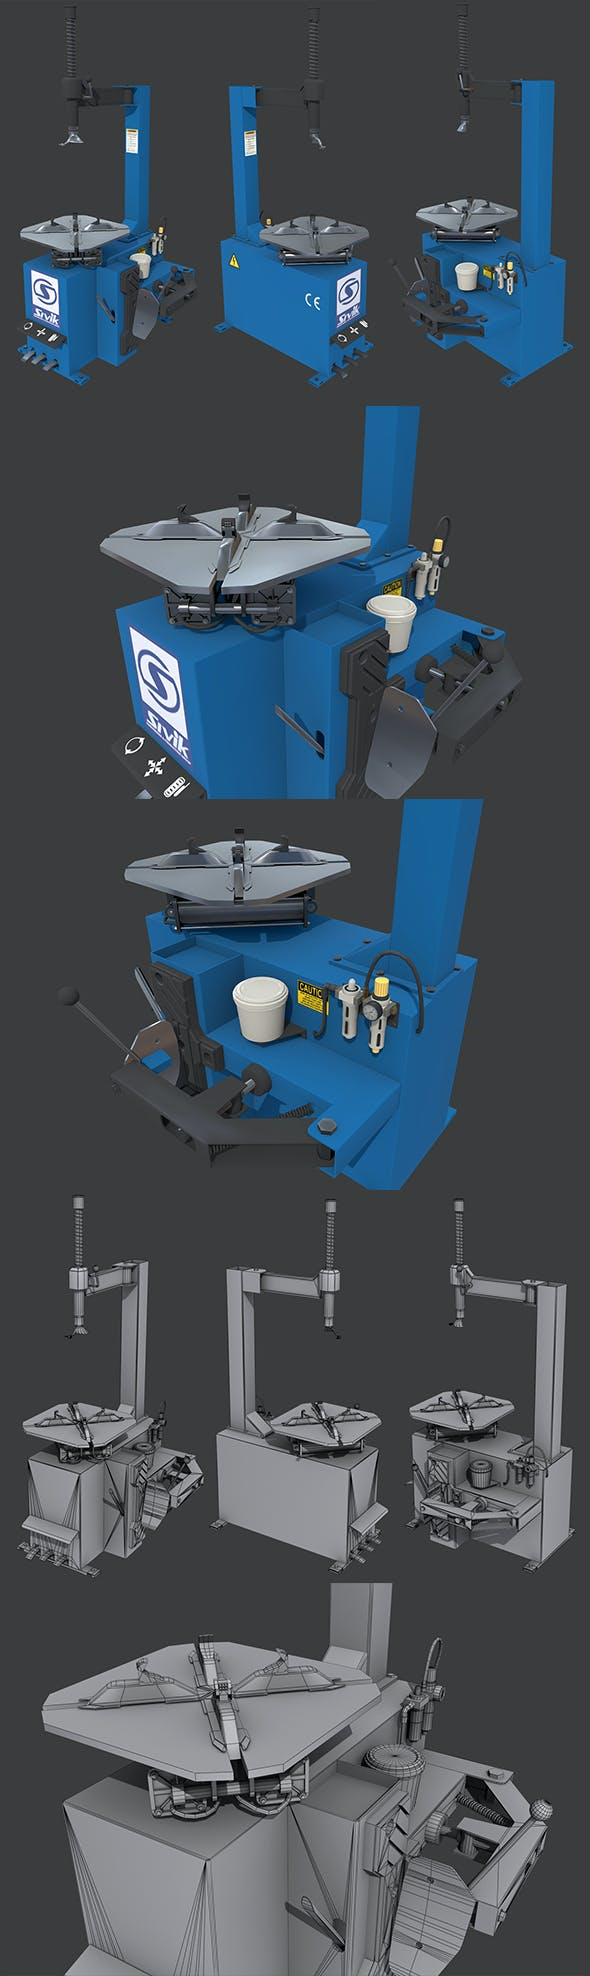 Tire Changer Machine - 3DOcean Item for Sale